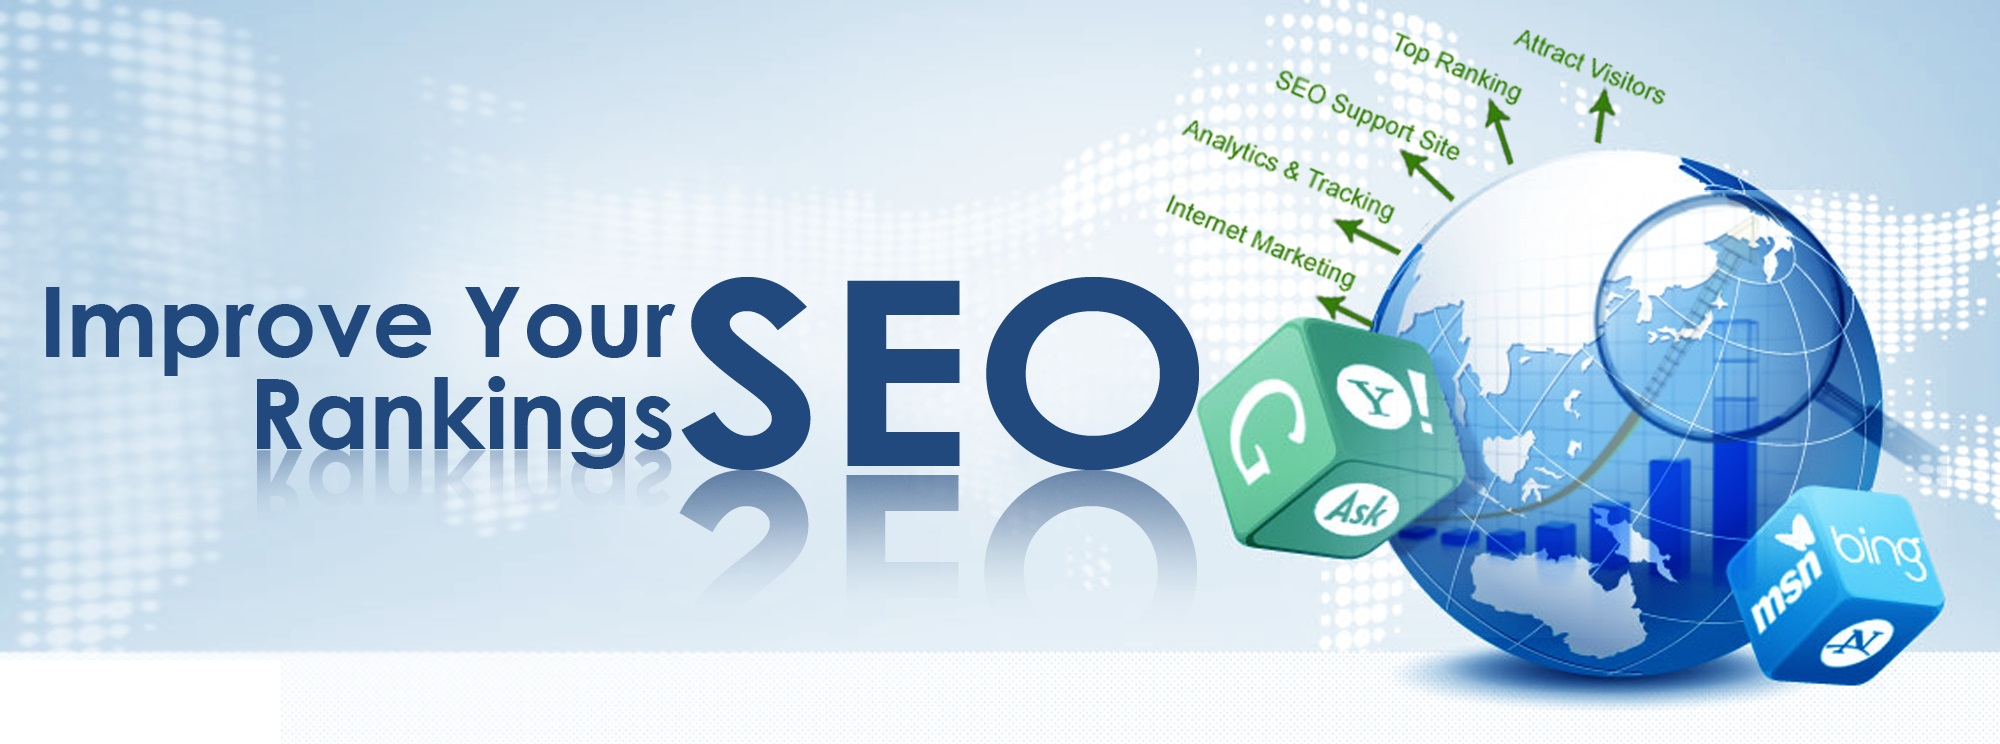 Improve SEO Ranking